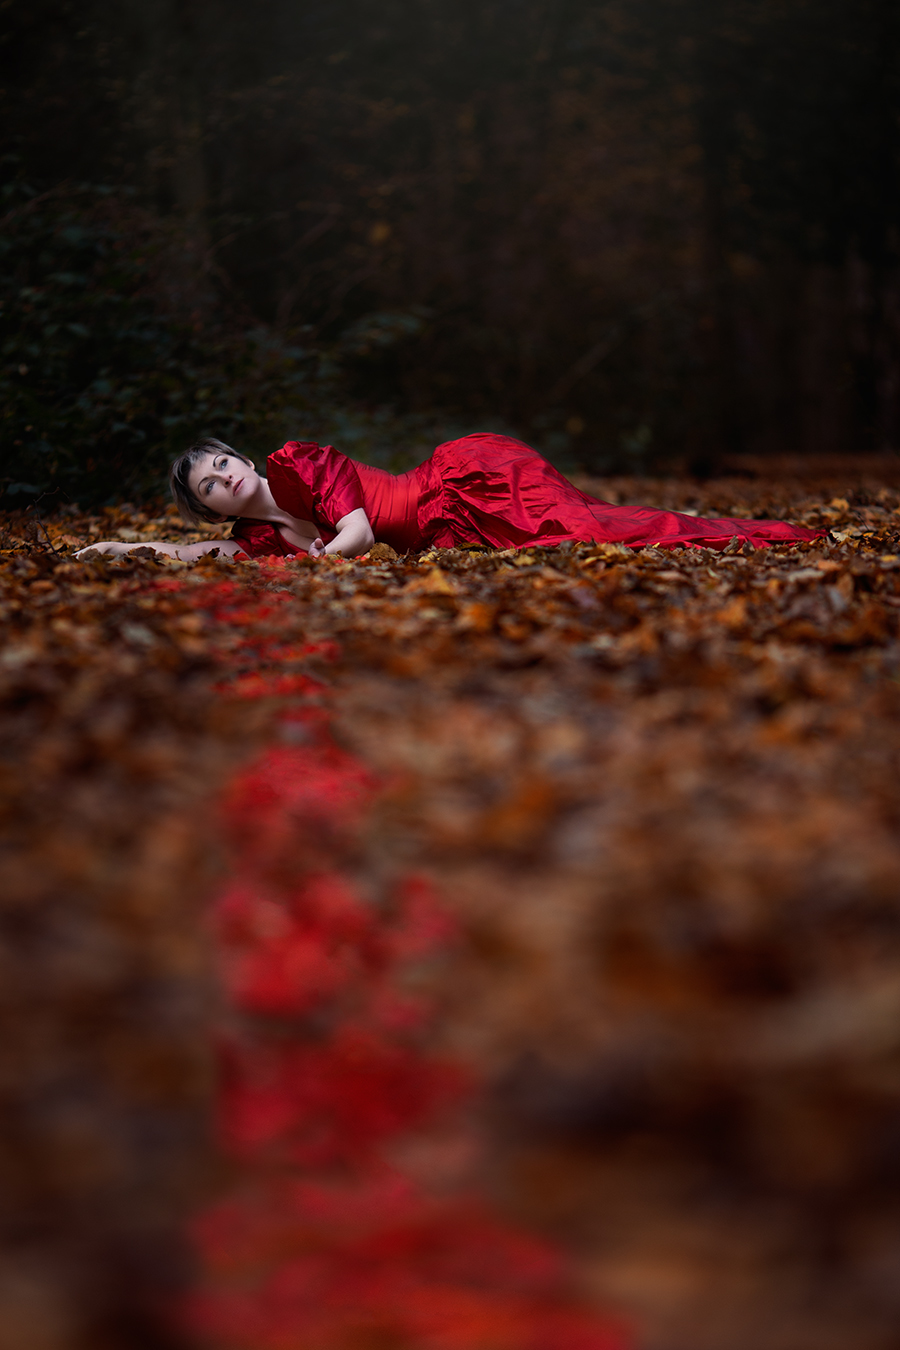 Scarlet Silence / Photography by Anjelica Hyde, Model LauraJDraycon, Stylist Anjelica Hyde / Uploaded 29th November 2016 @ 09:01 AM